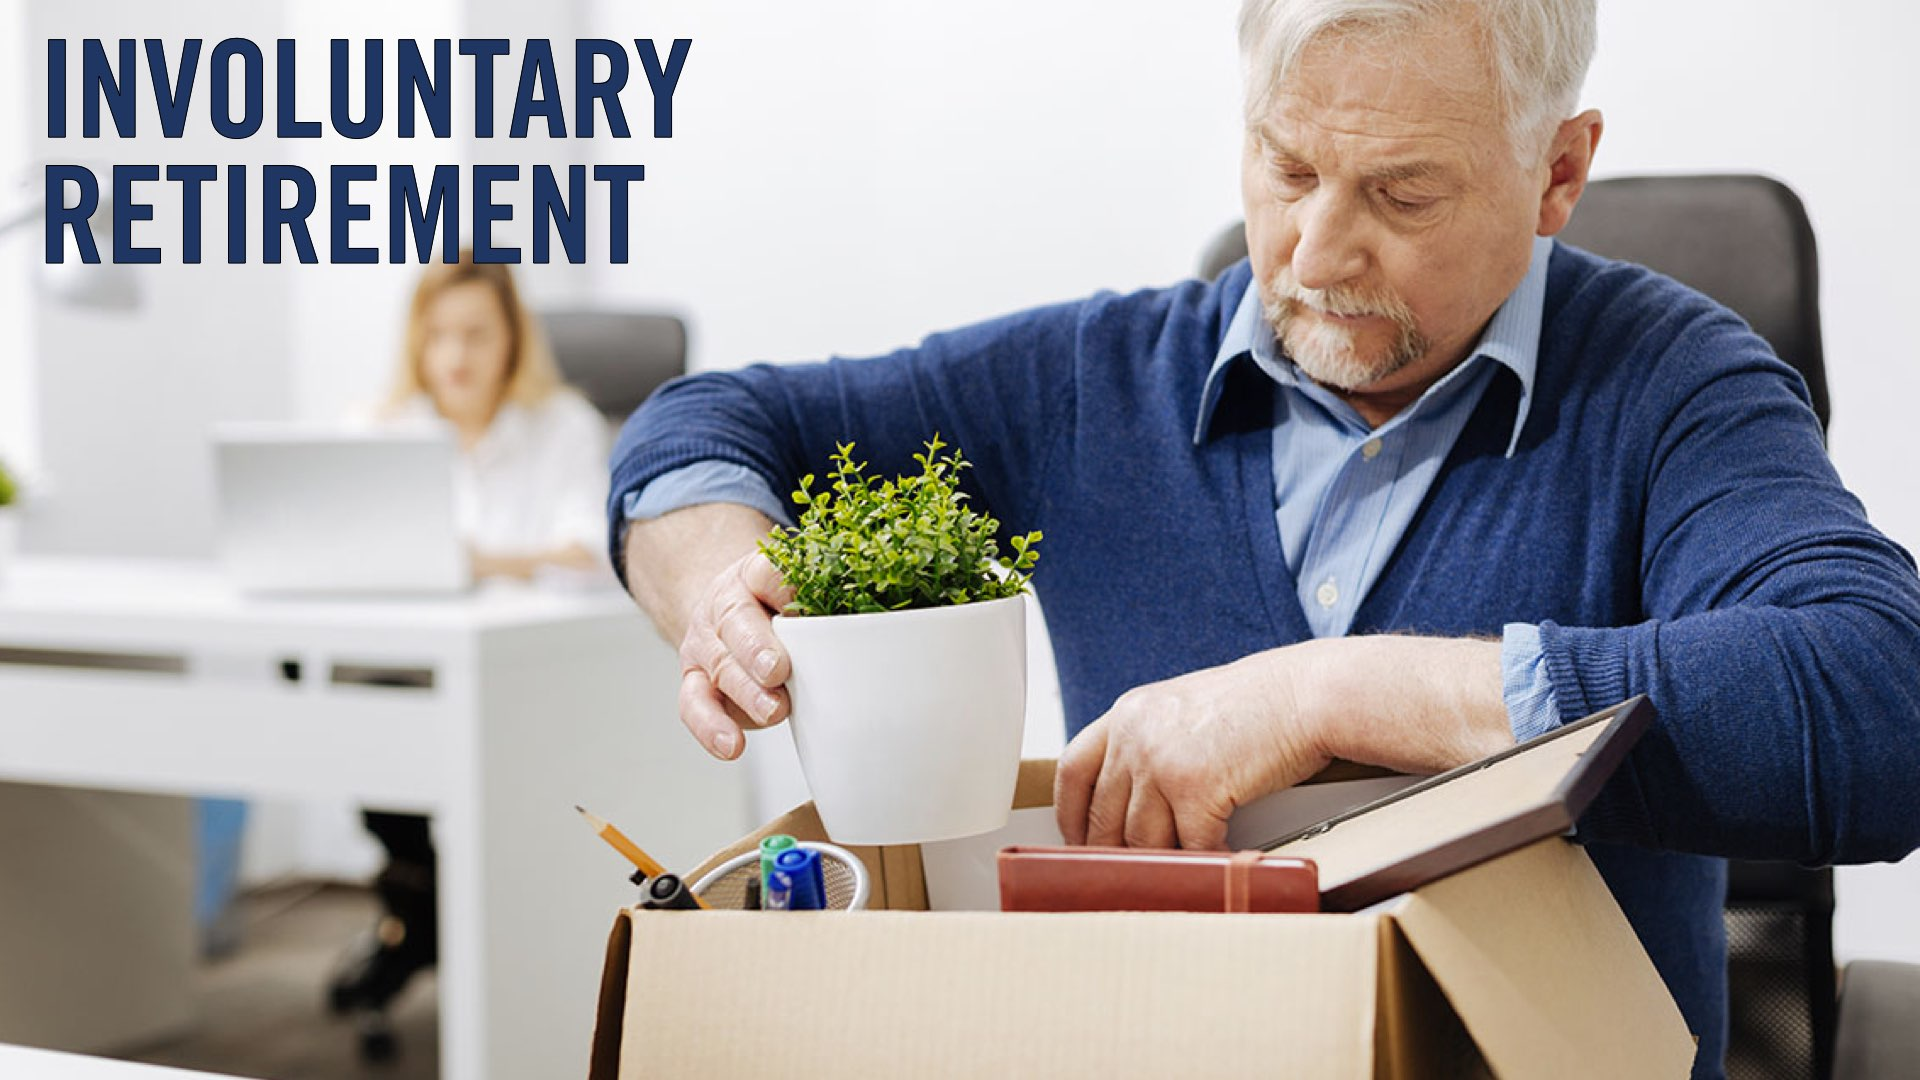 many older Americans have been laid off facing an 'involuntary retirement'